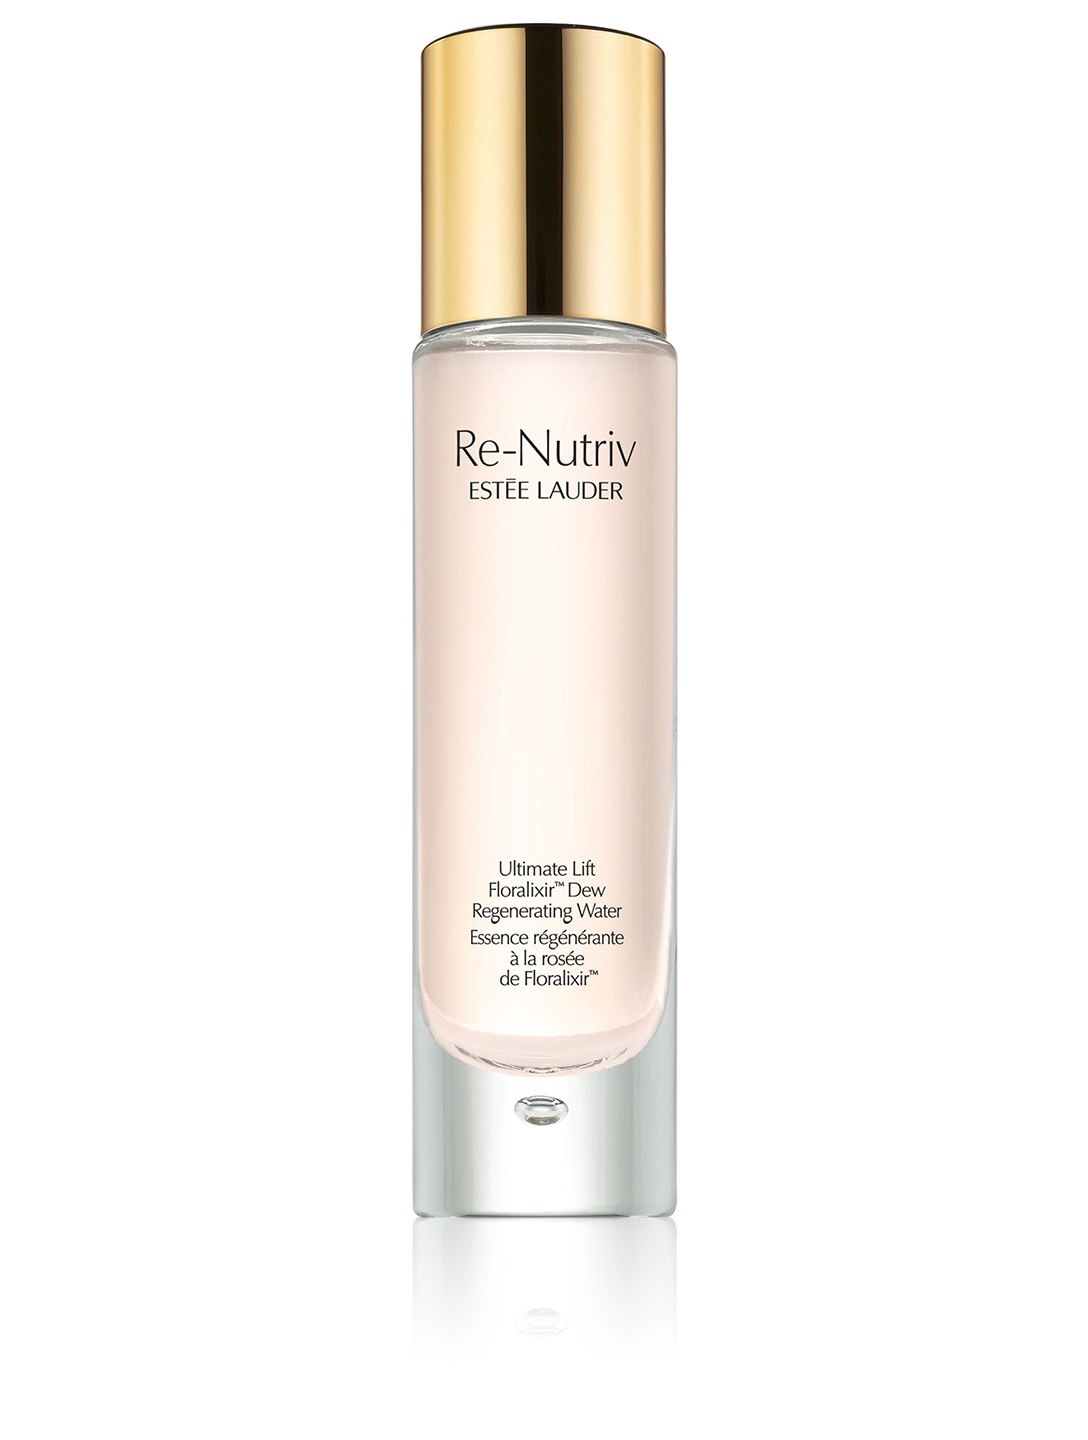 ESTÉE LAUDER RE-NUTRIV Ultimate Lift Floralixir™ Dew Regenerating Water Beauty